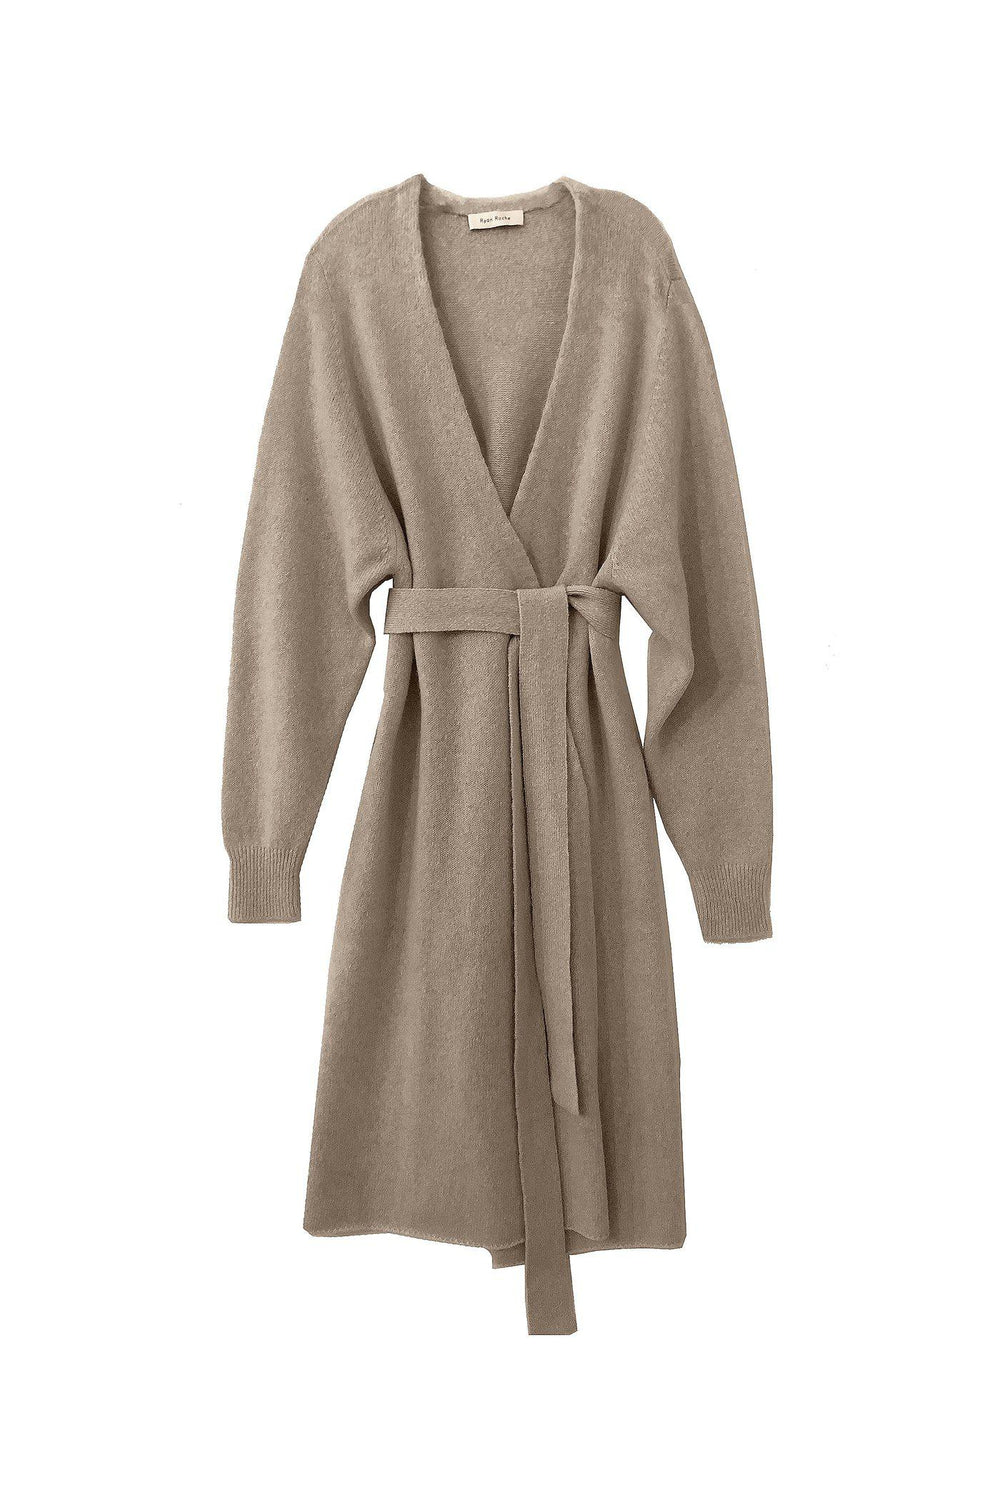 RYAN ROCHE Our signature luxury wrap knit robe